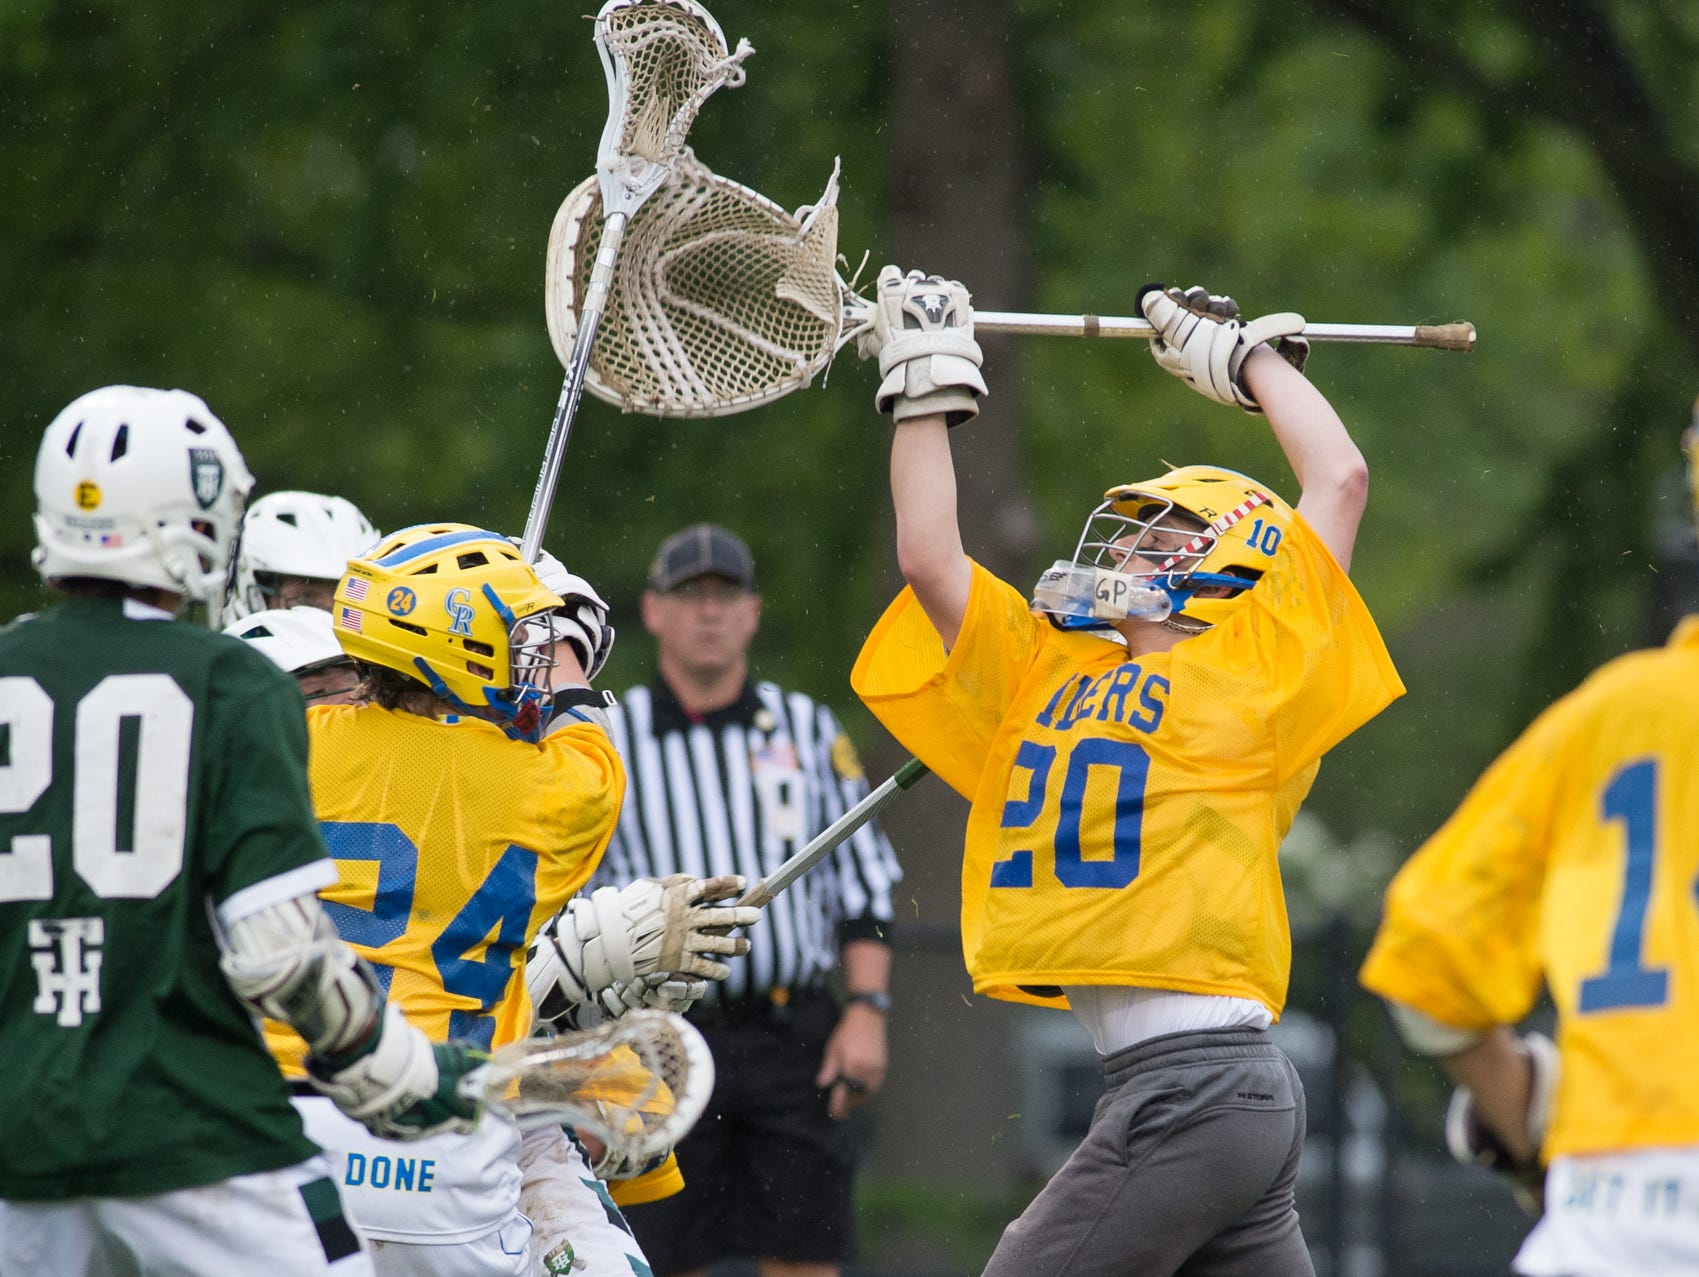 Caesar Rodney's goalie Tyler Gross reaches to stop a shot in their home game against Tower Hill.